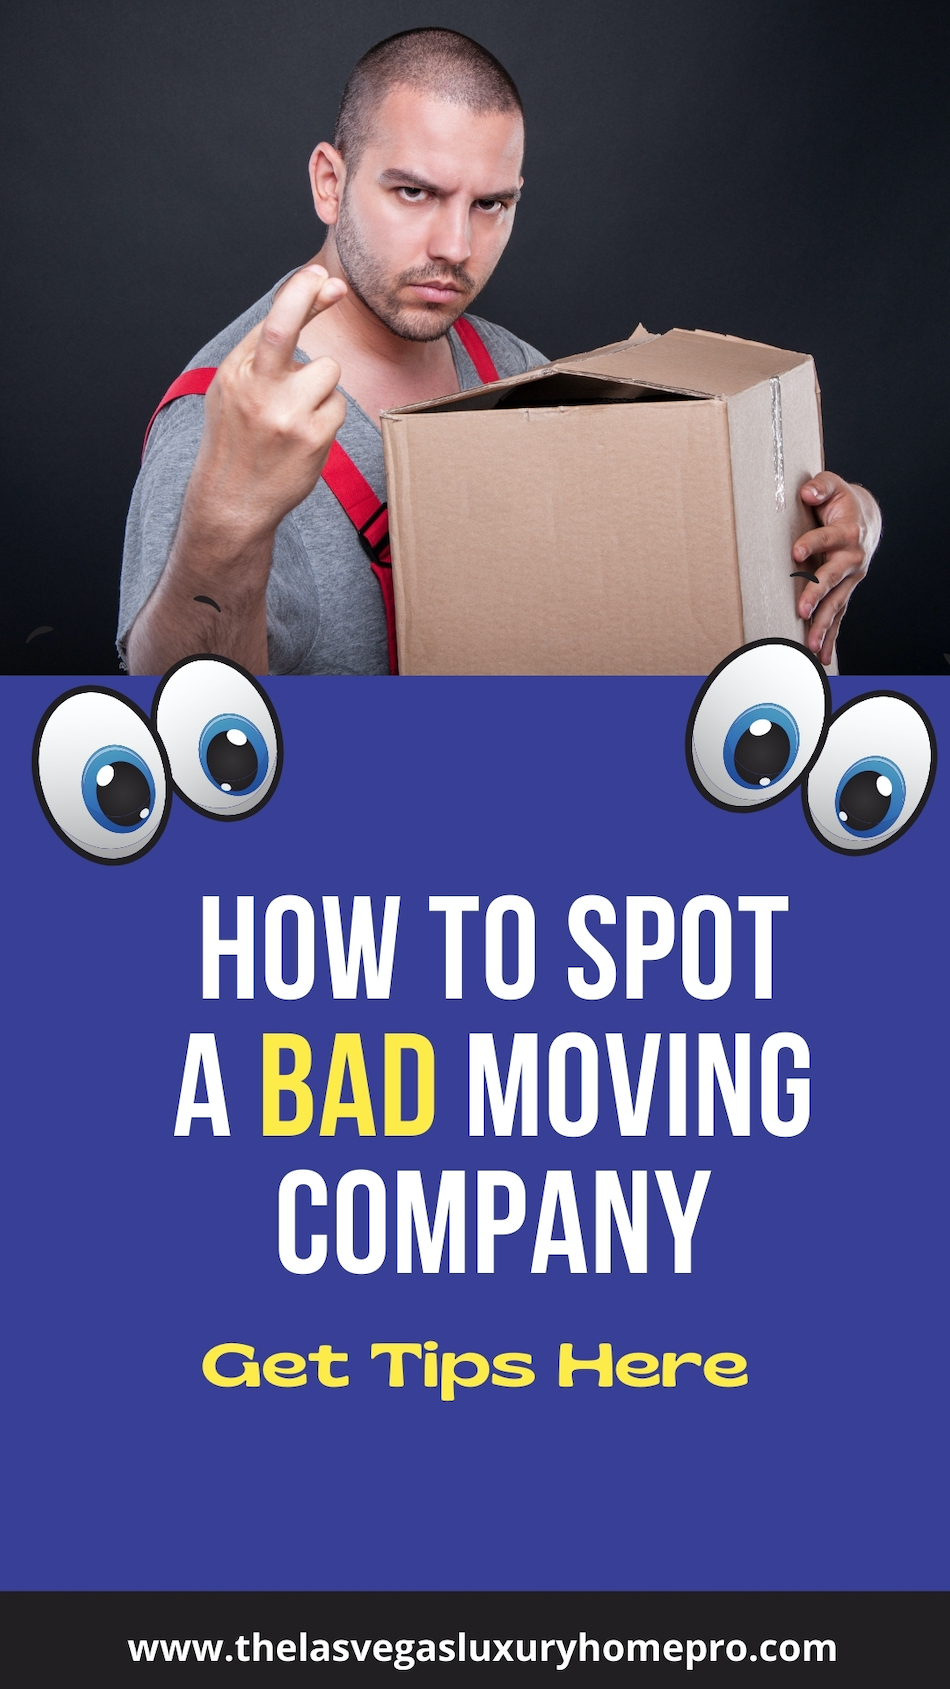 How to Spot a Bad Moving Company: 8 Warning Signs